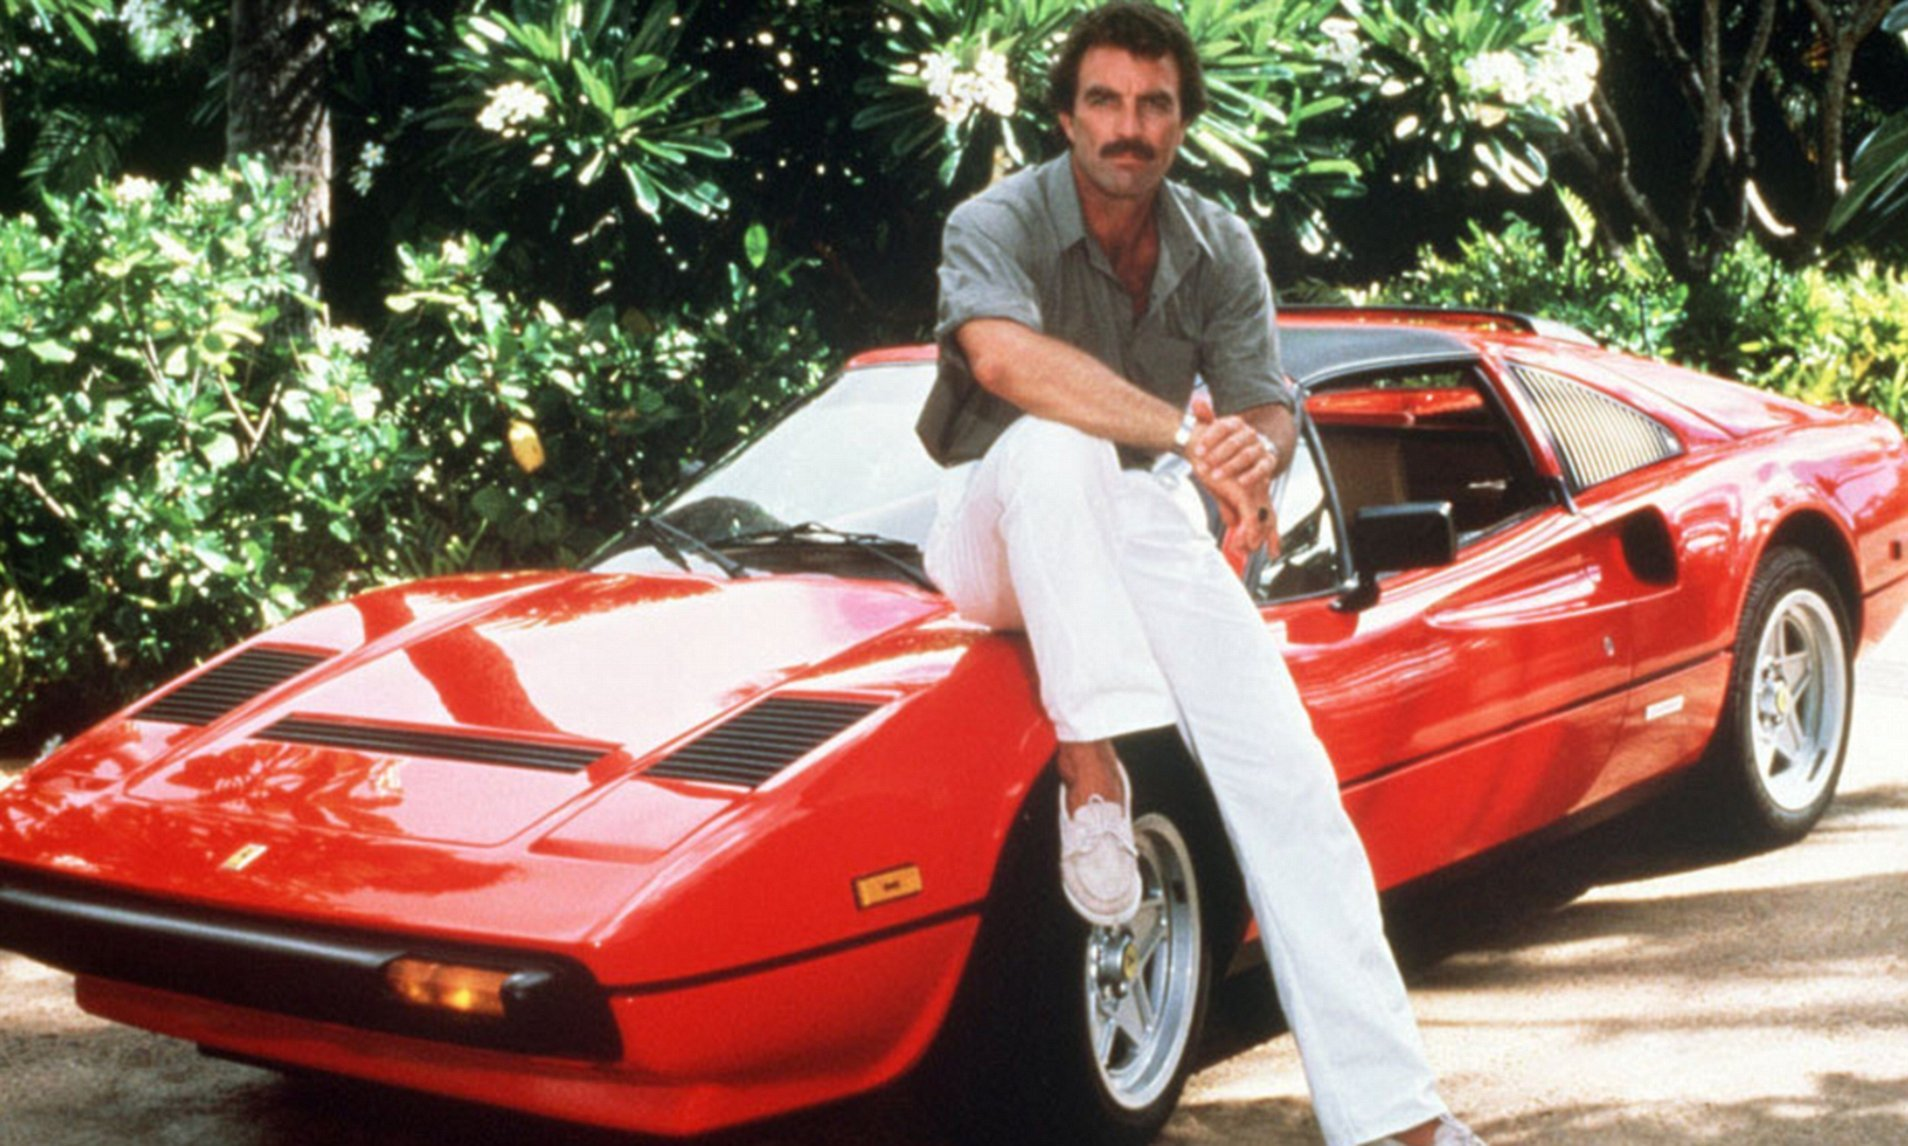 3C32E5E100000578 0 image a 10 1484650282125 25 Things You Didn't Know About Magnum, P.I.